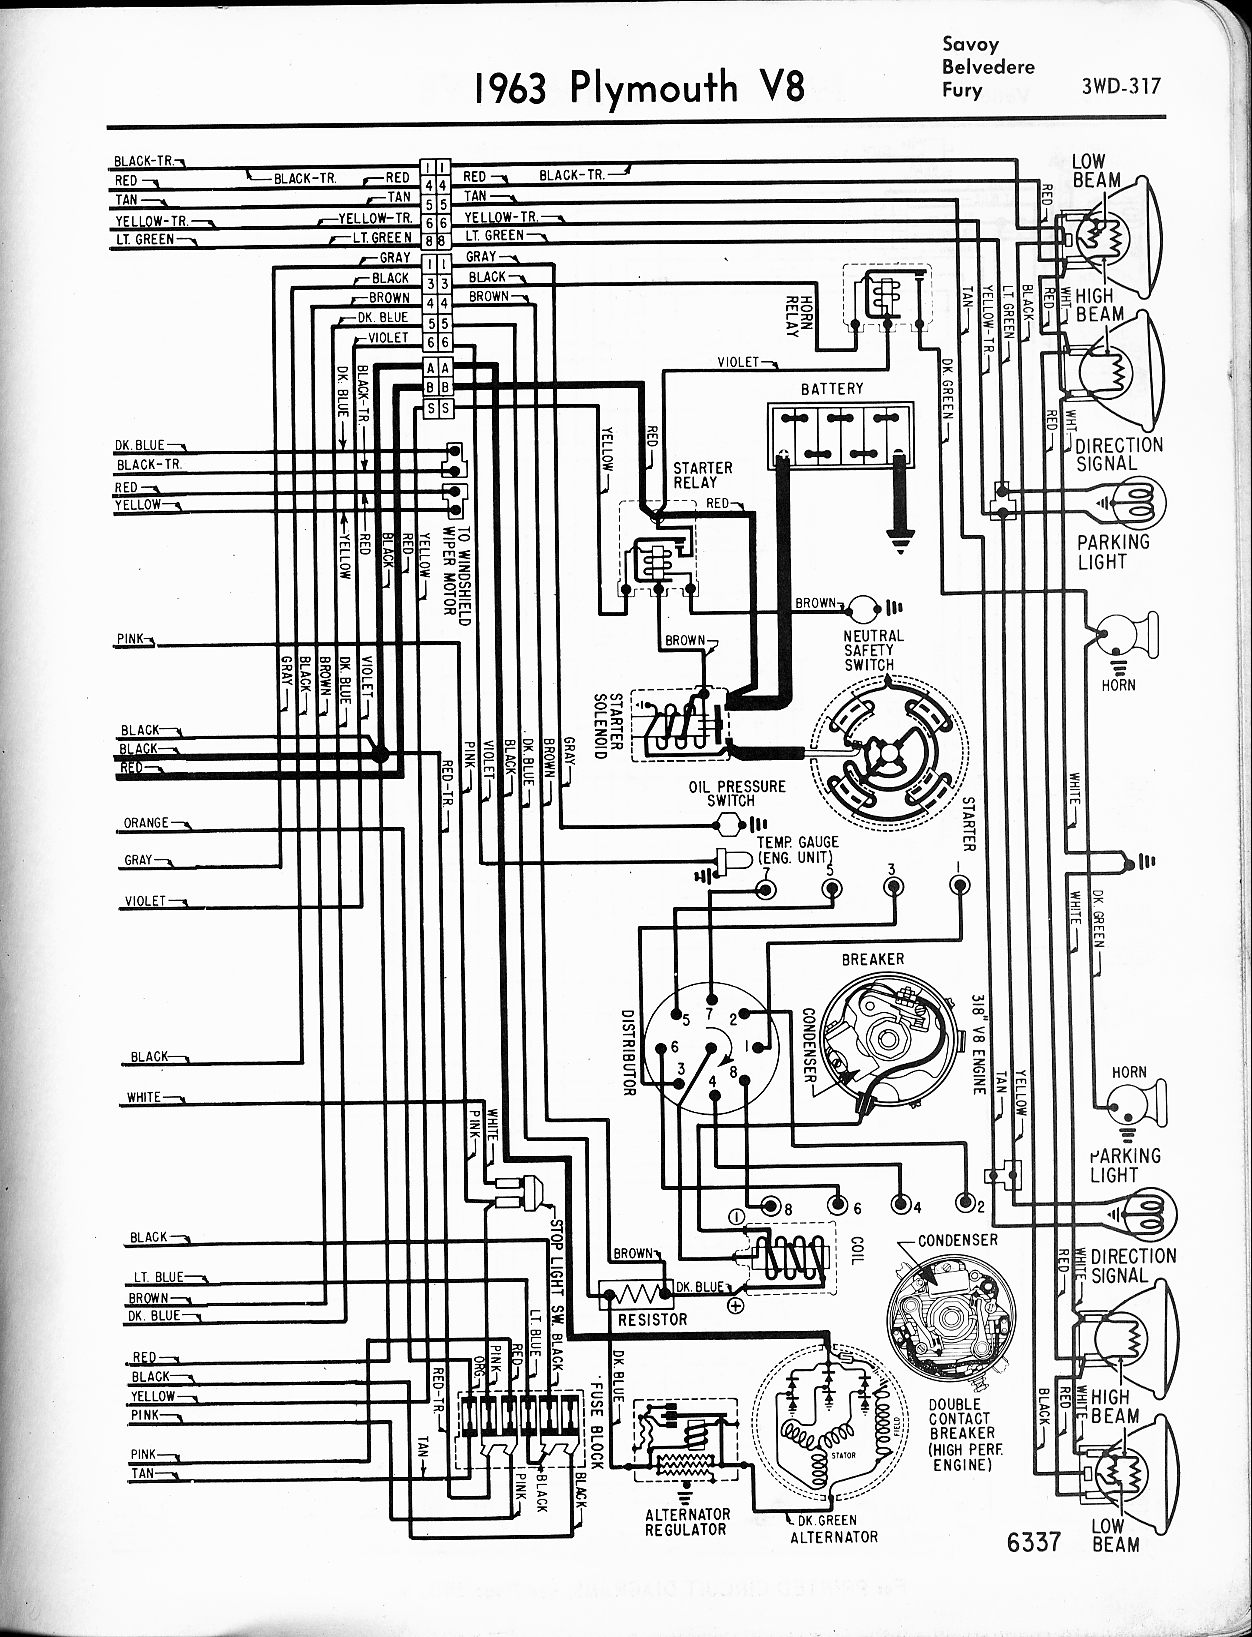 68 plymouth wiring diagram wiring diagram 68 plymouth wiring diagram wiring diagram